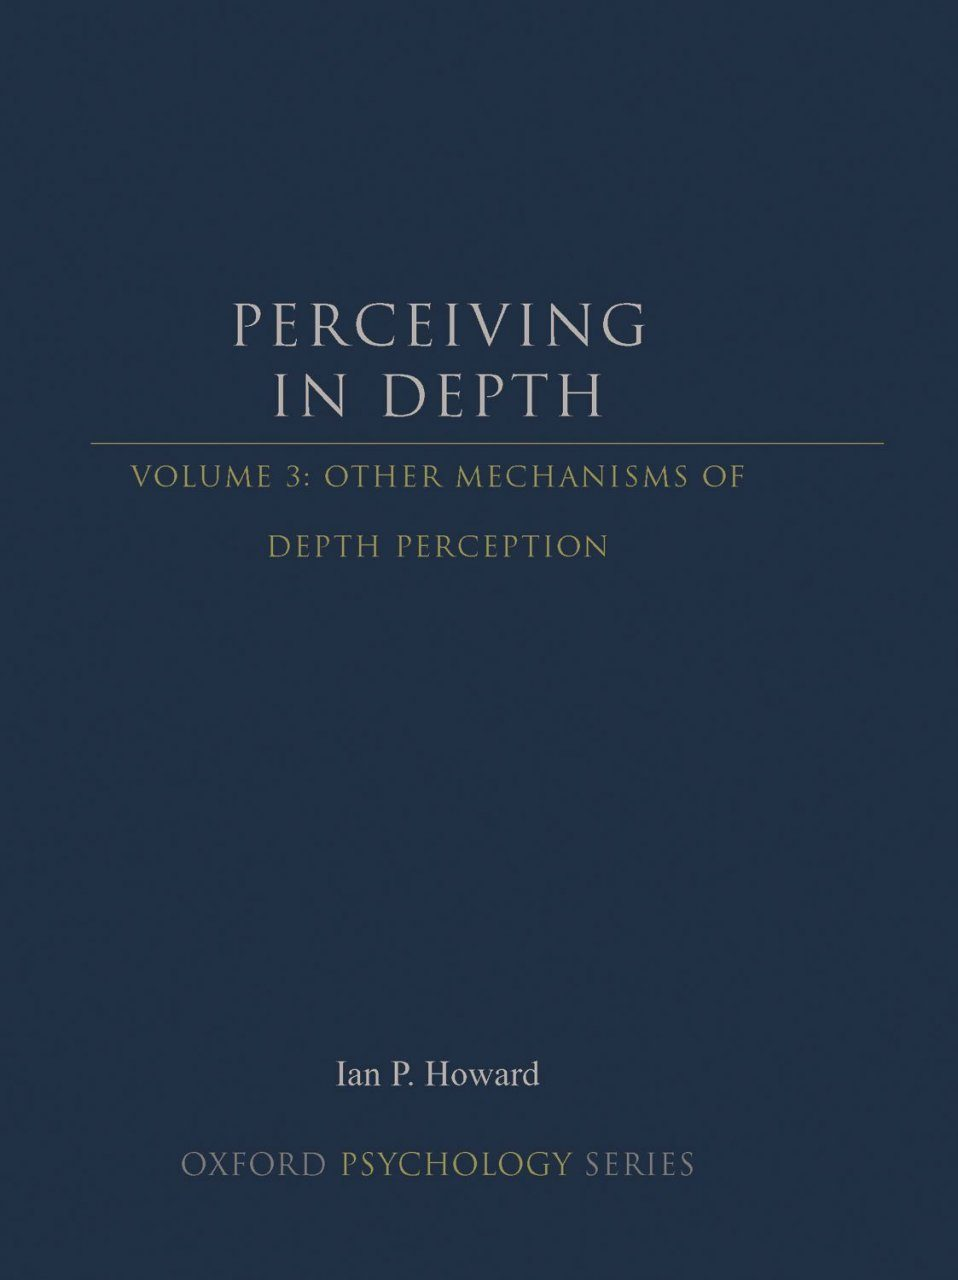 Perceiving in Depth, Volume 3: Other Mechanisms of Depth Perception